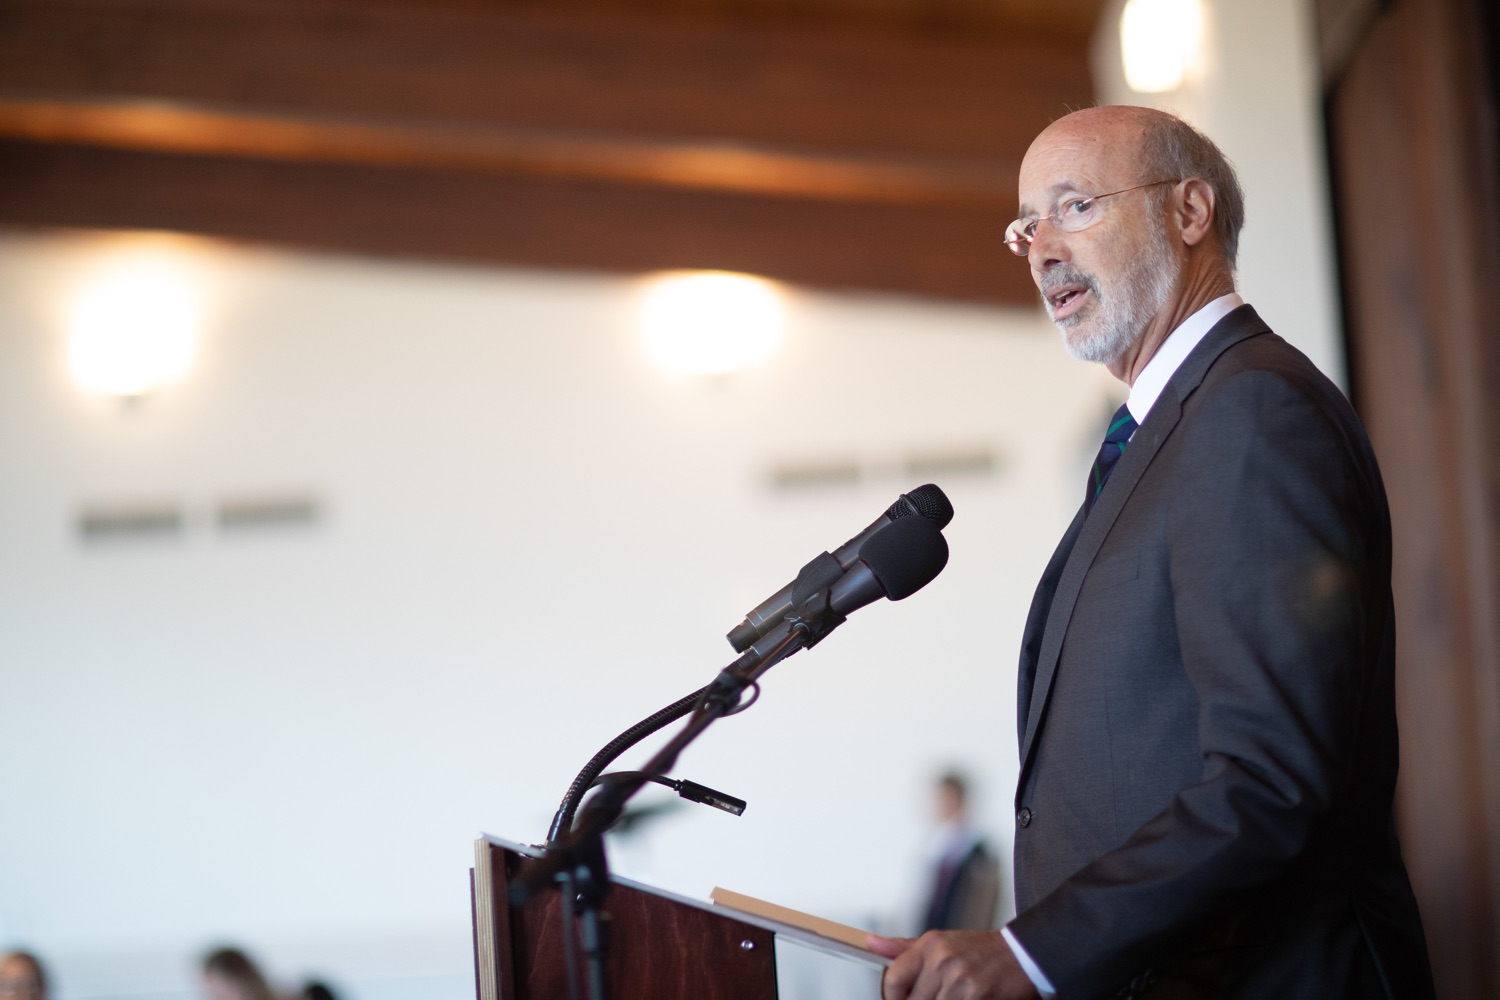 "<a href=""http://filesource.abacast.com/commonwealthofpa/photo/17467_gov_opioids_dz_002.JPG"" target=""_blank"">⇣ Download Photo<br></a>Boalsburg, PA  Governor Tom Wolf addressing the summit. Governor Tom Wolf today kicked off his administrations first Opioid Command Center Opioid Summit: Think Globally, Act Locally, which brought together 200 individuals helping their communities fight the opioid crisis, including community organizations, non-profits, schools, health care workers, addiction and recovery specialists, and families affected by the opioid crisis.  Tuesday, October 1, 2019"